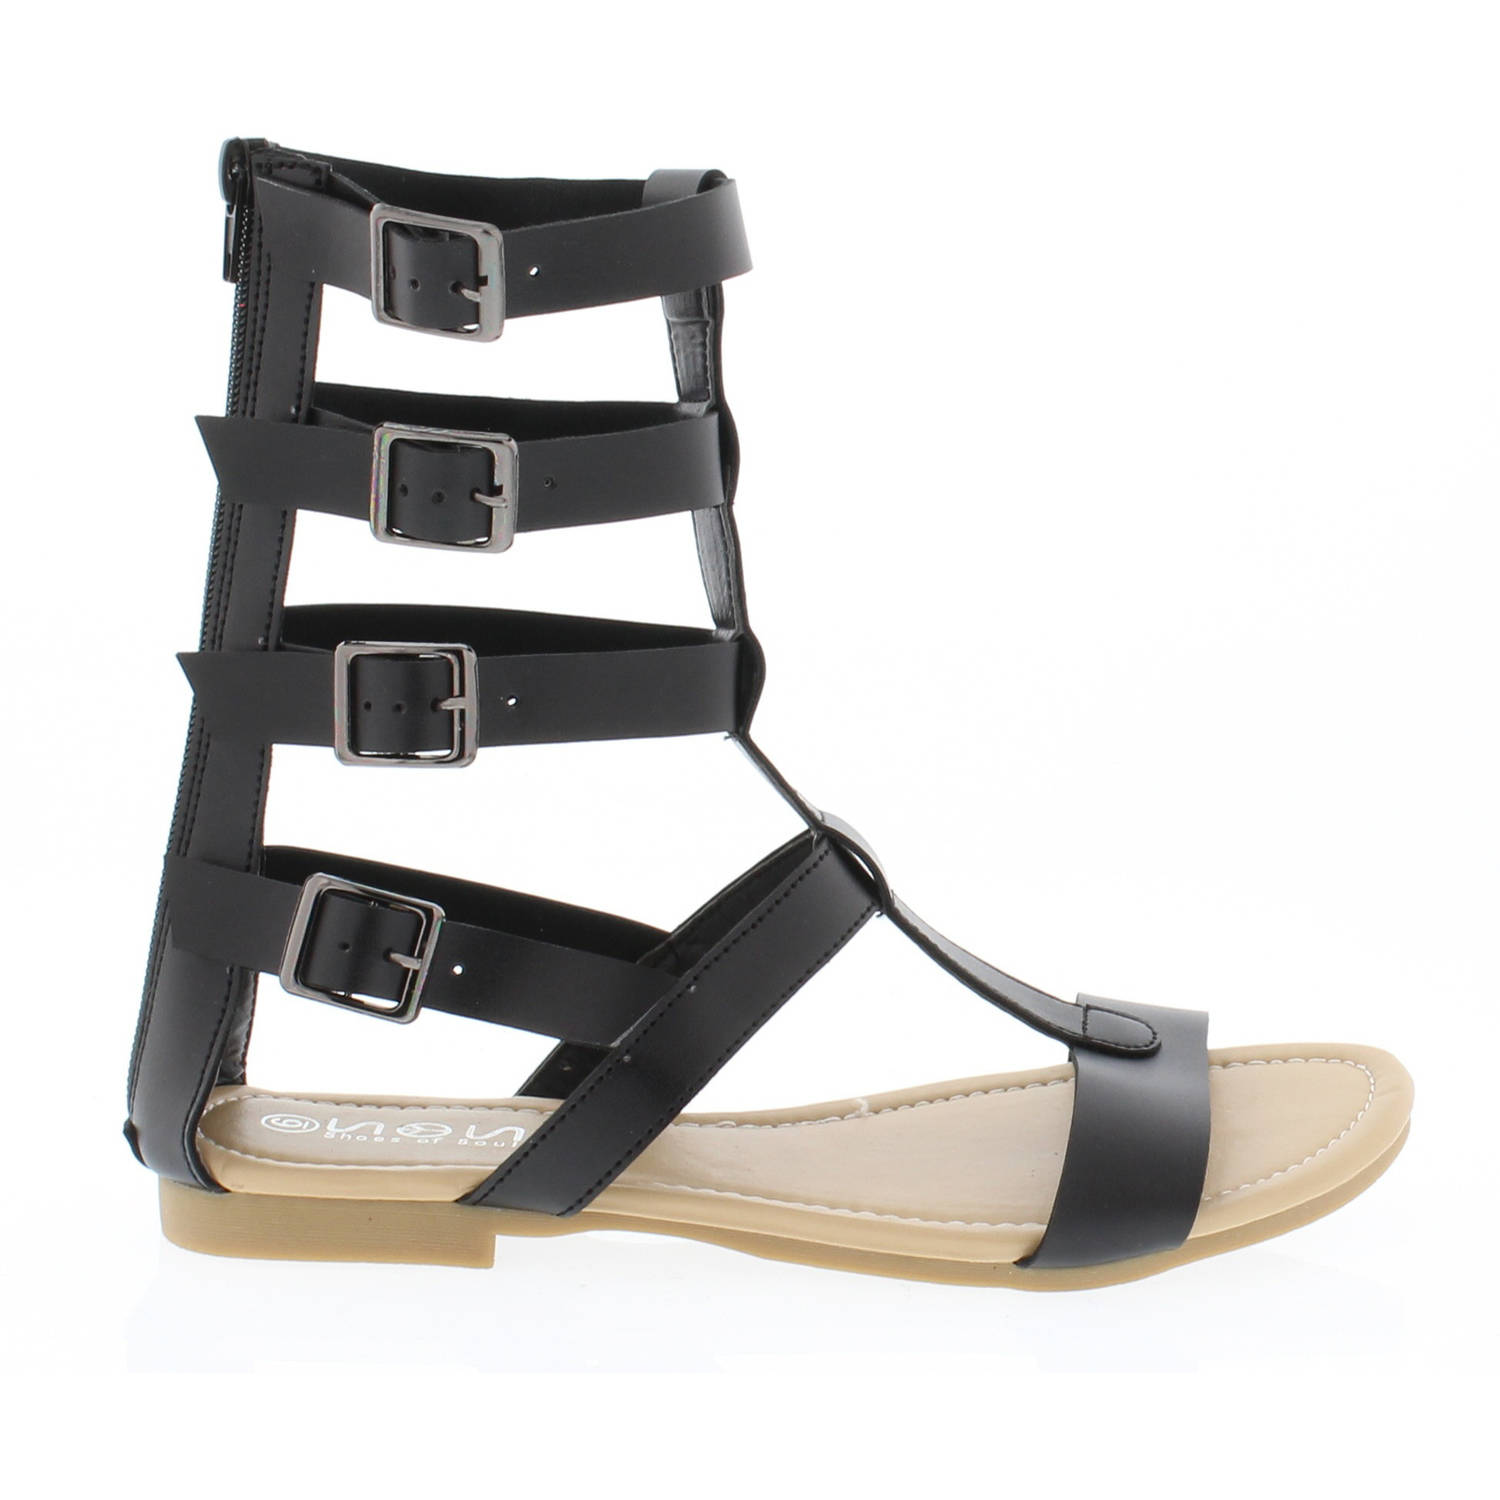 Shoes of Soul Women's Strappy Long Sandal